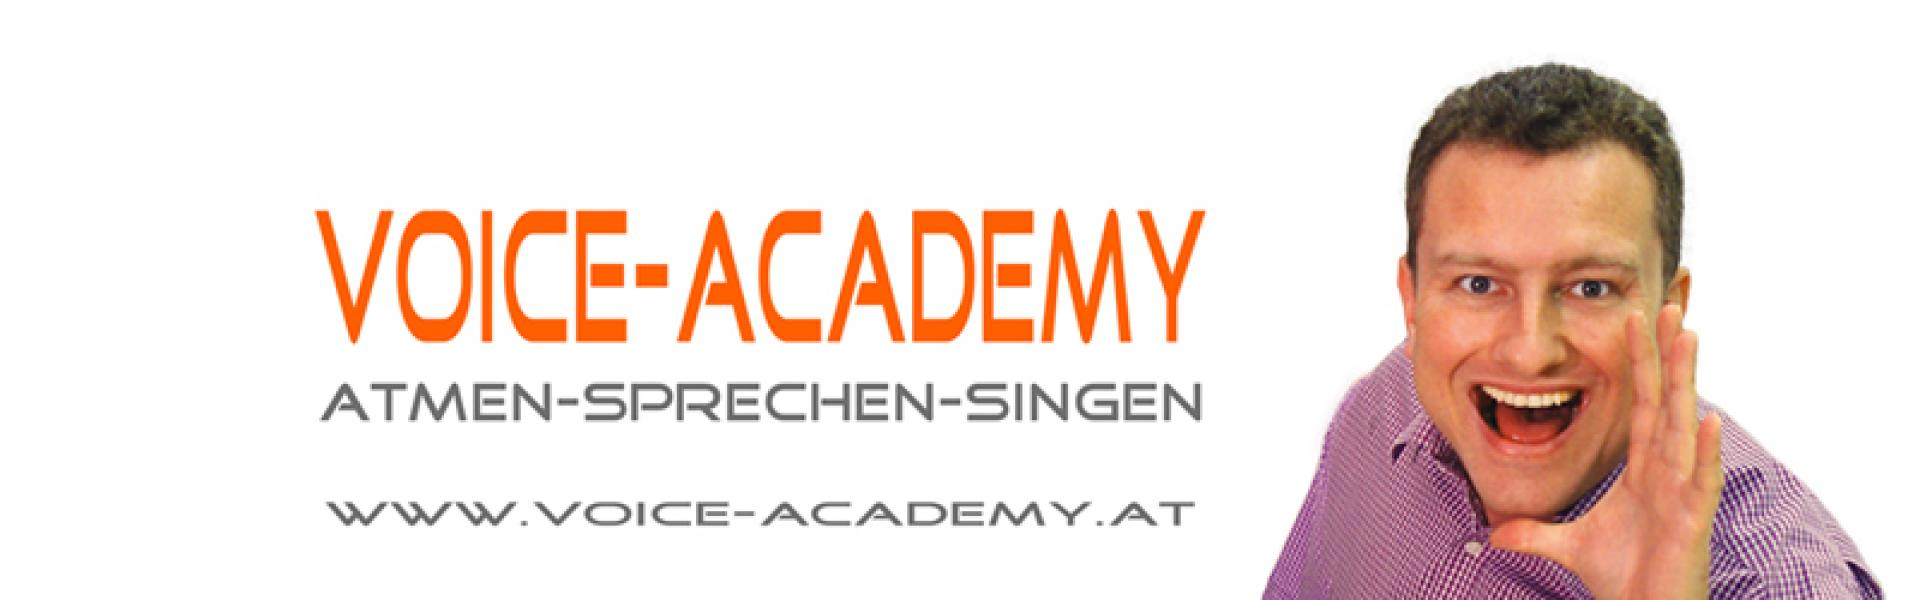 VOICE-ACADEMY cover